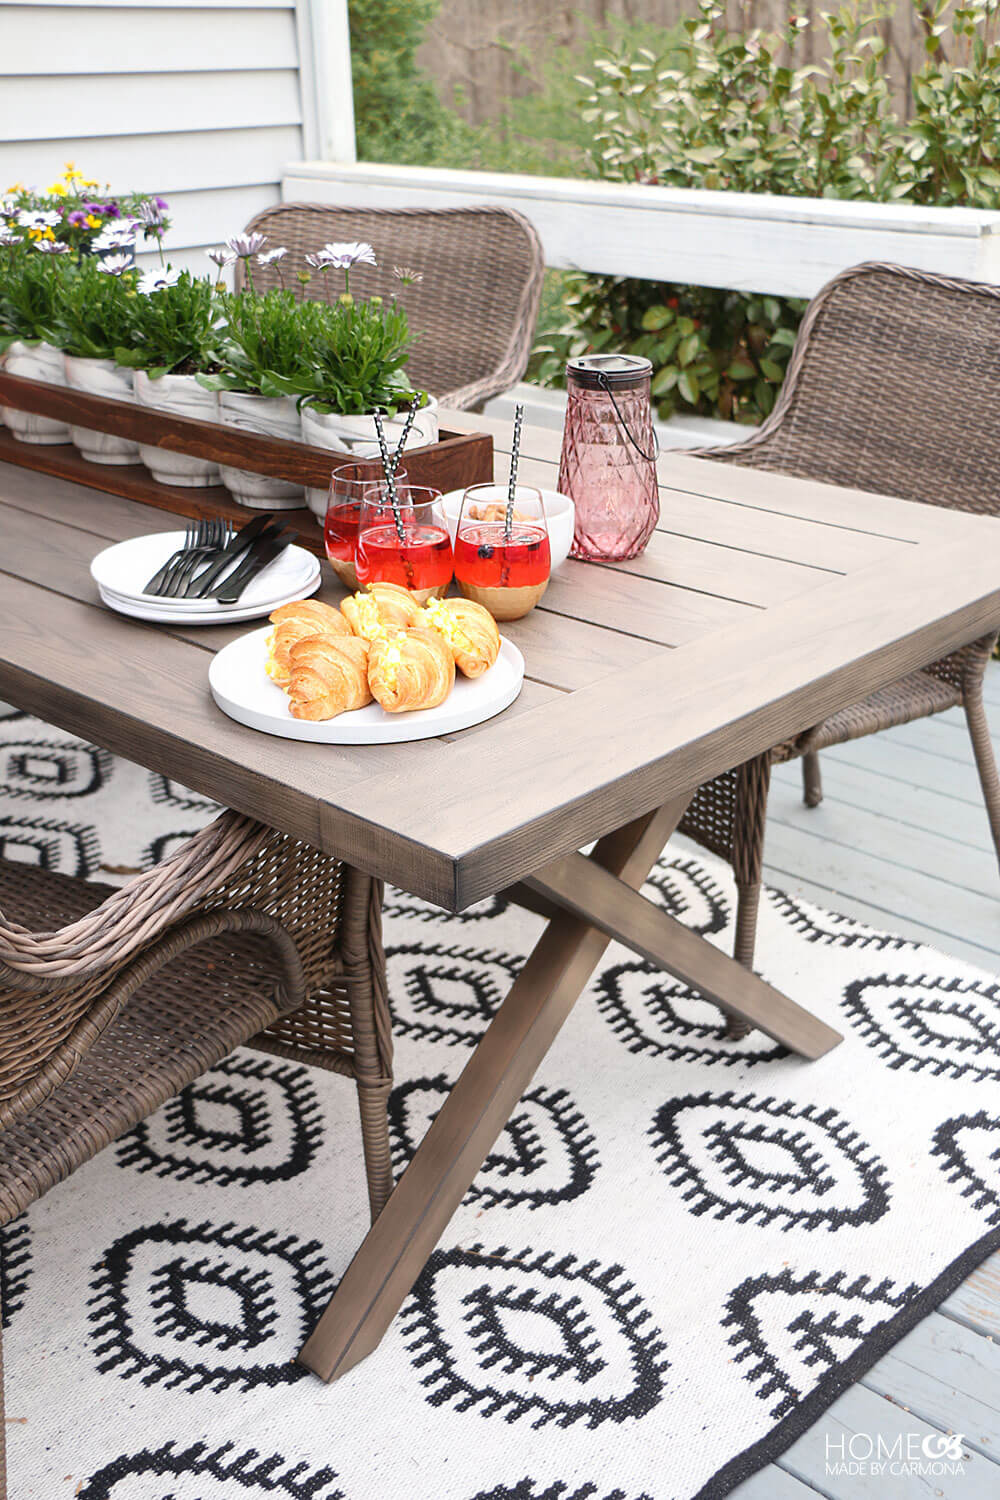 Tips for Effortless Outdoor Entertaining